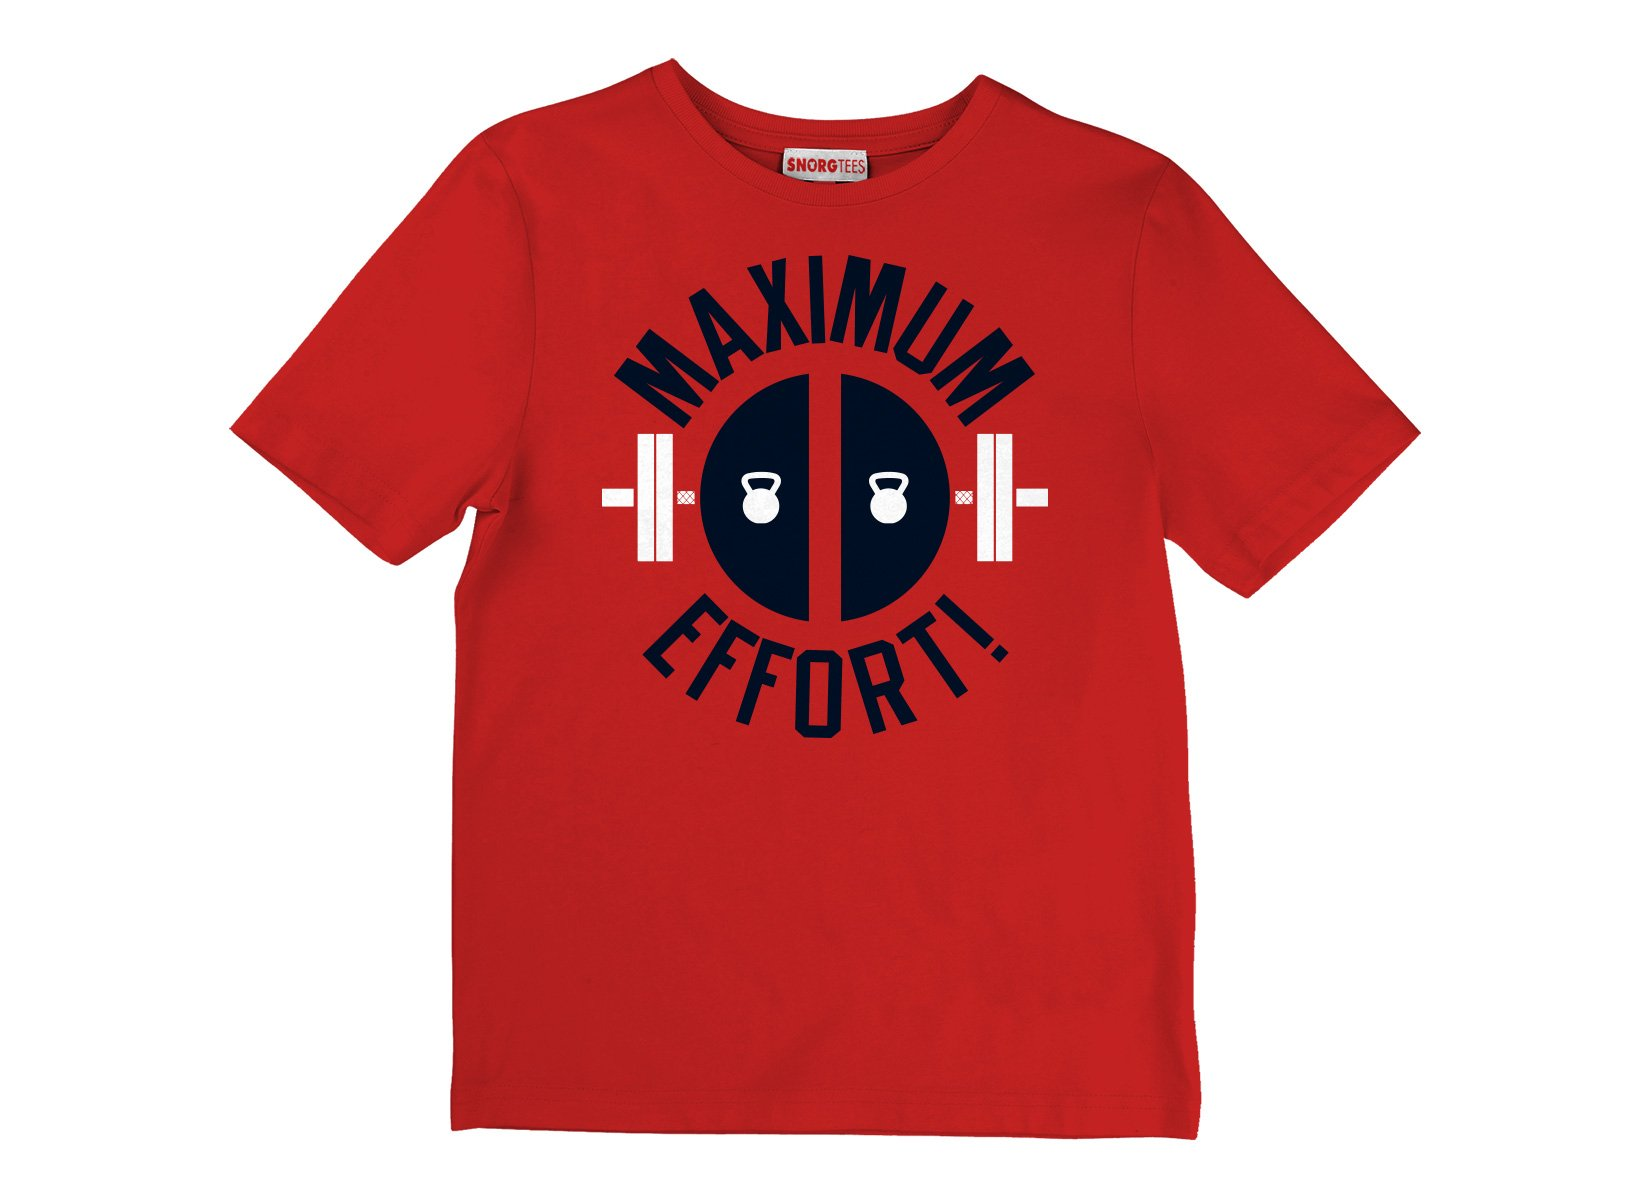 Maximum Effort! on Kids T-Shirt